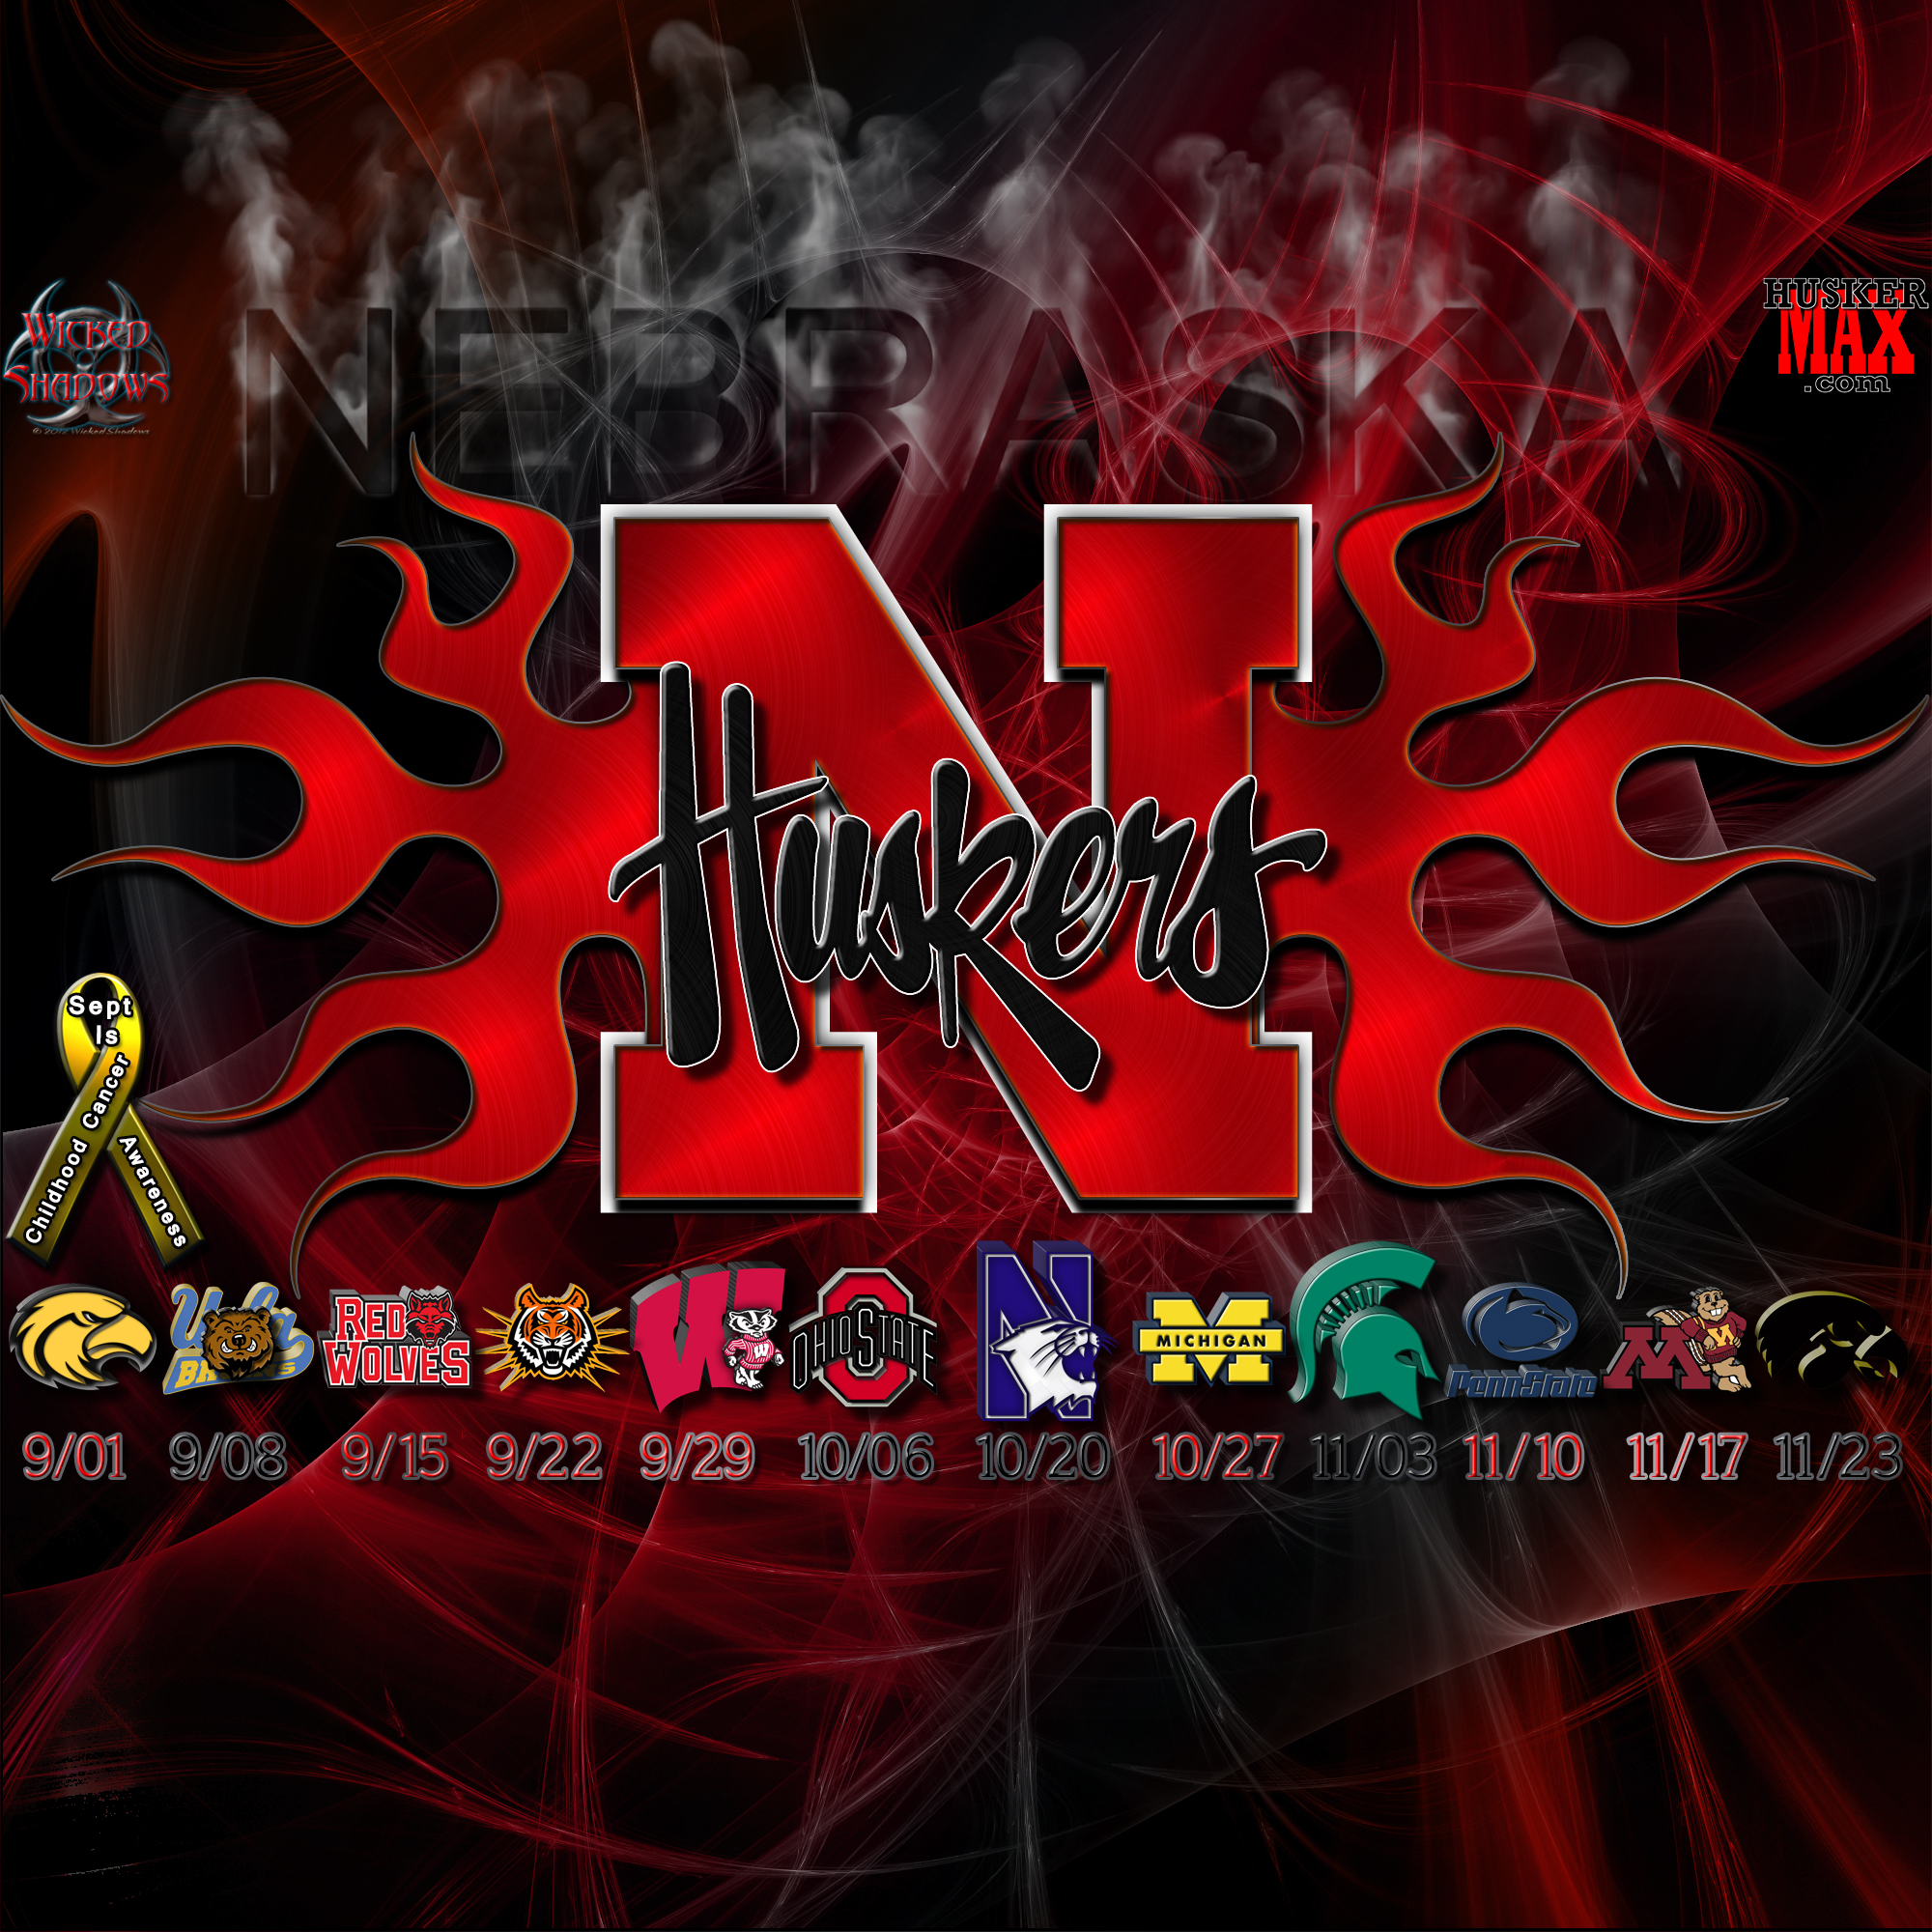 Nebraska Huskers 2012 football schedule wallpaper 2000x2000